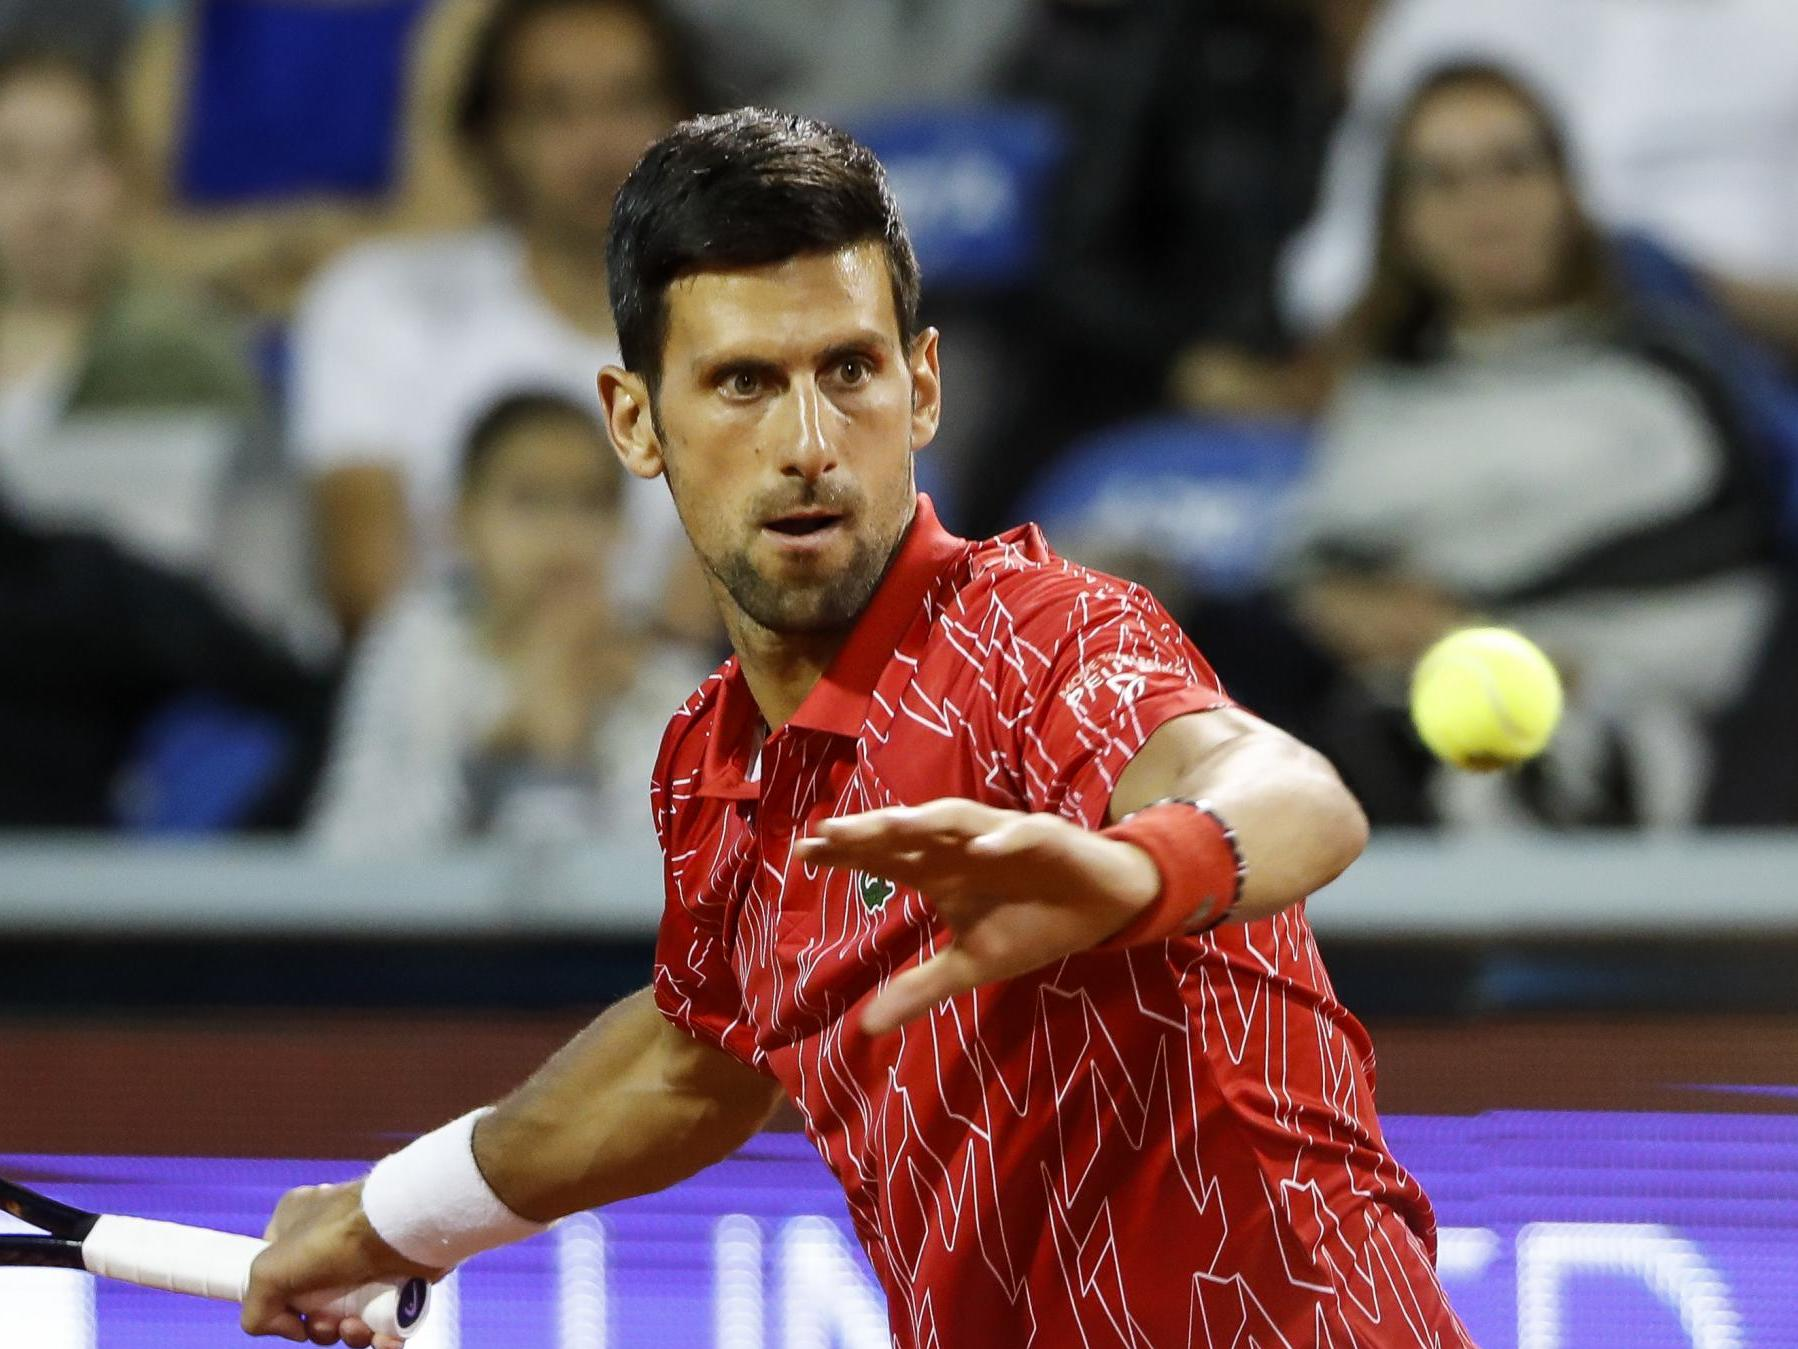 Novak Djokovic Upstaged By Ball Boy On Way To Winning Return At His Own Adria Tour The Independent The Independent